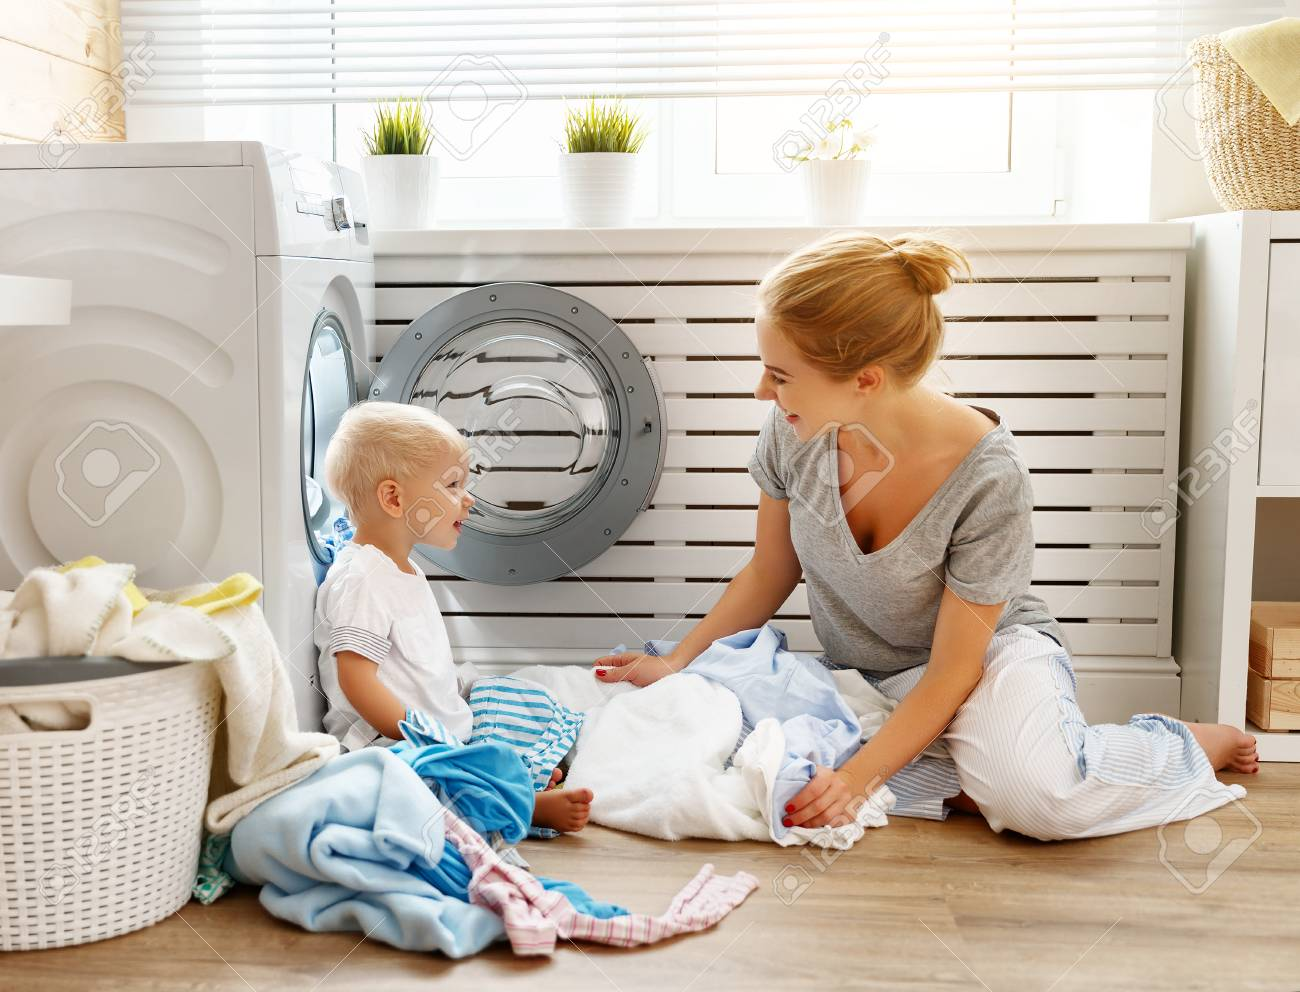 Happy Family Mother Housewife And Child Baby Son In The Laundry